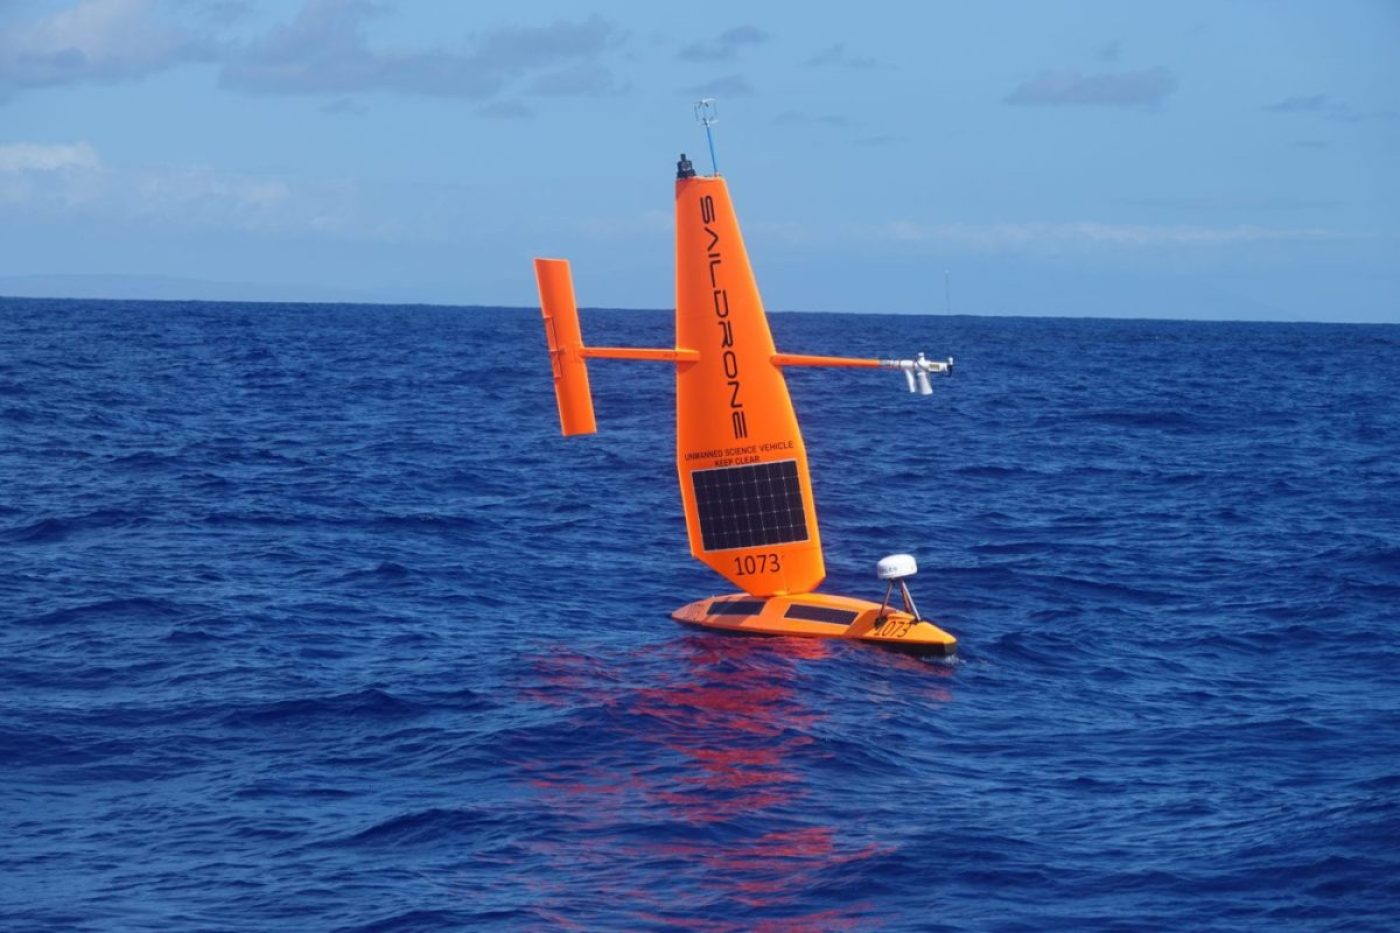 A Coast Guard prototype unmanned surface vehicle performs a test off Oahu, Hawaii, Oct. 20, 2020. The focus of the test was to explore how current and emerging technologies might be used to enhance maritime domain awareness in remote regions. (U.S. Coast Guard photo courtesy of the Coast Guard Research and Development Center/Released)